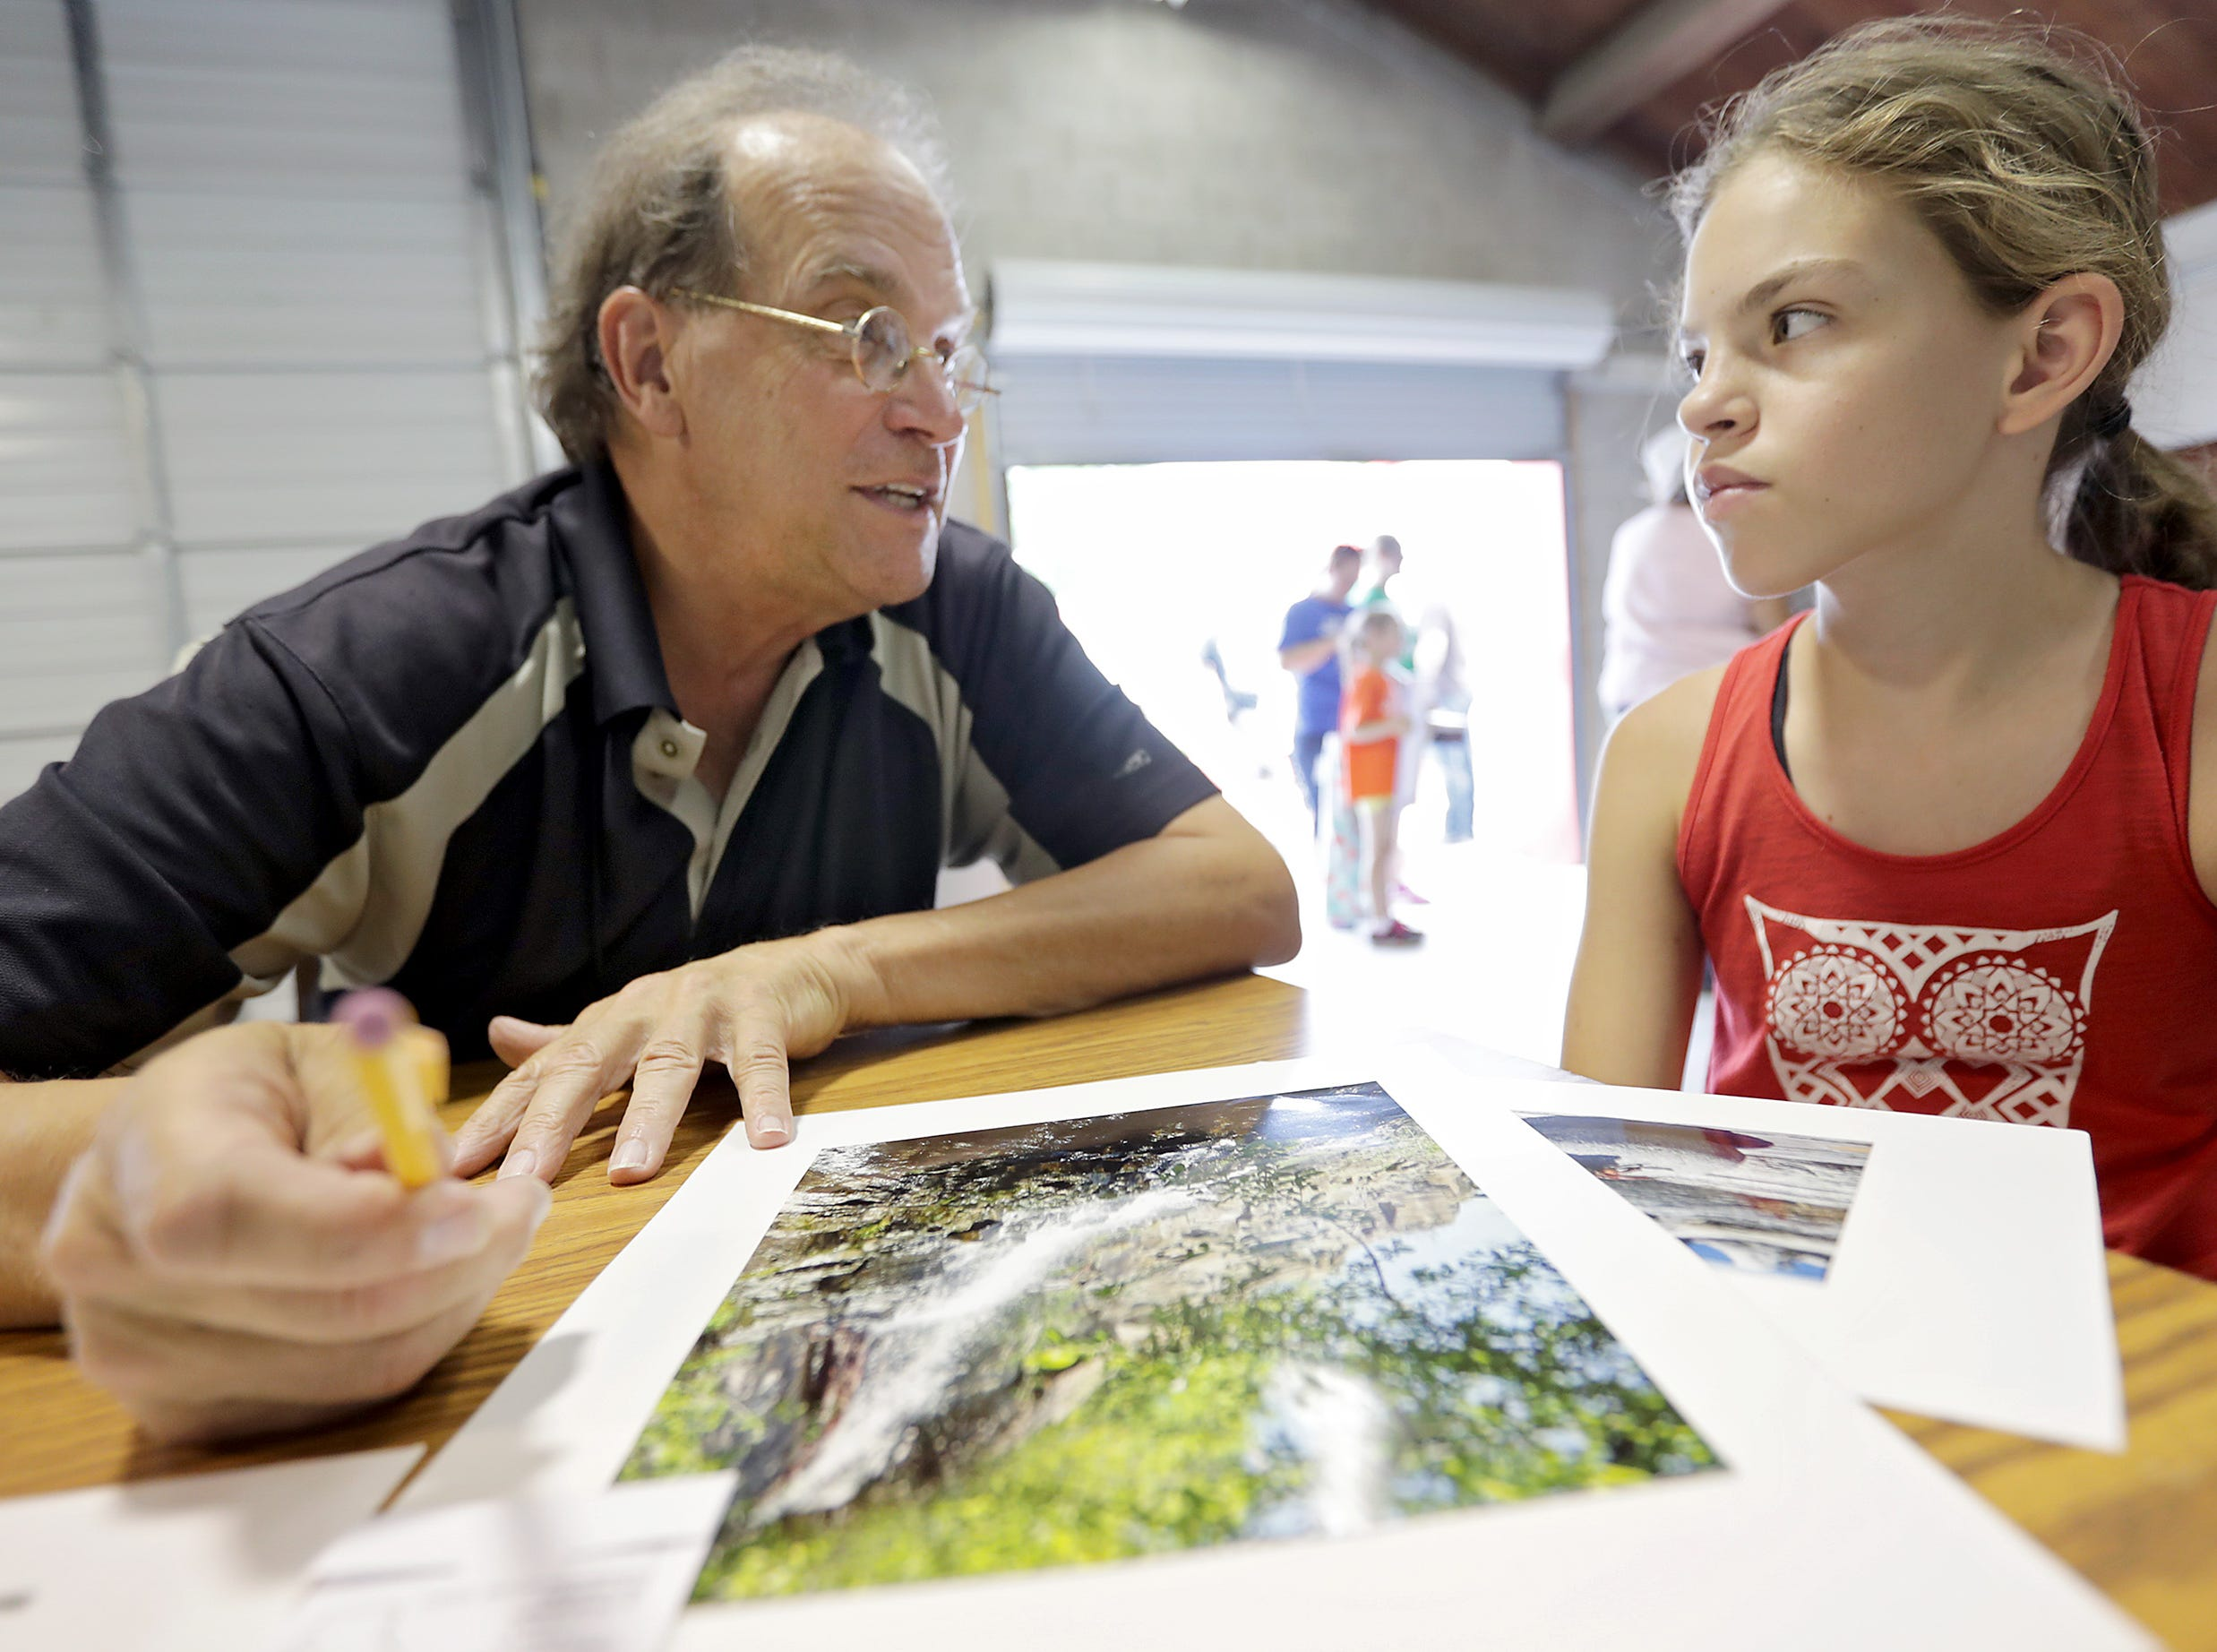 Judge Wayne Brabender critiques Alyna Johnson's photography submissions during the Outagamie County Fair on Wednesday, July 25, 2018 in Seymour, Wis. 